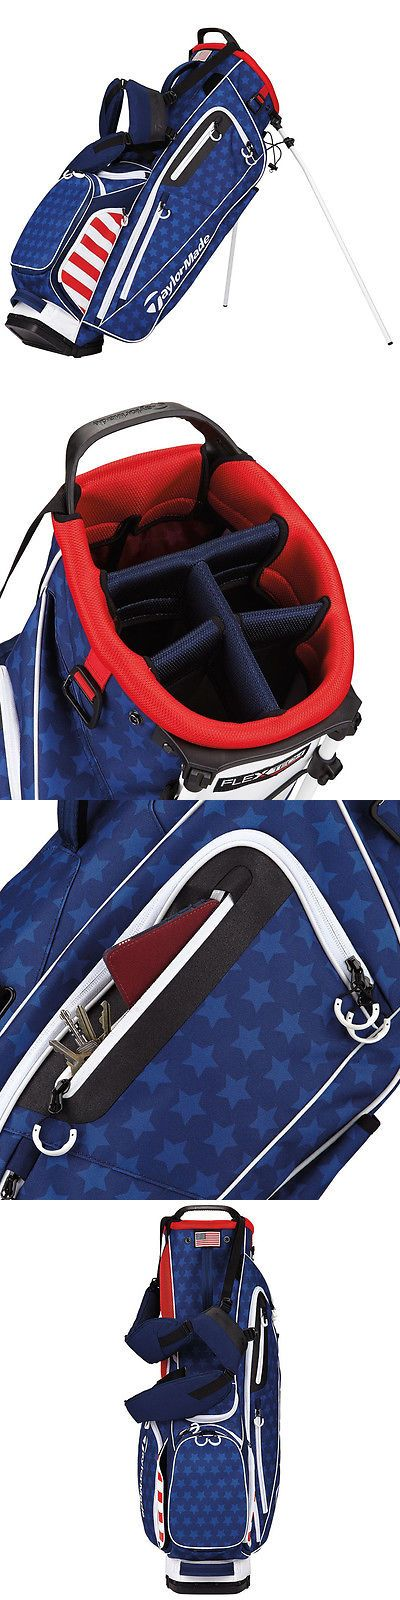 Other Golf 630: Taylormade Us Open Stand Bag 2017 -> BUY IT NOW ONLY: $184.99 on eBay!